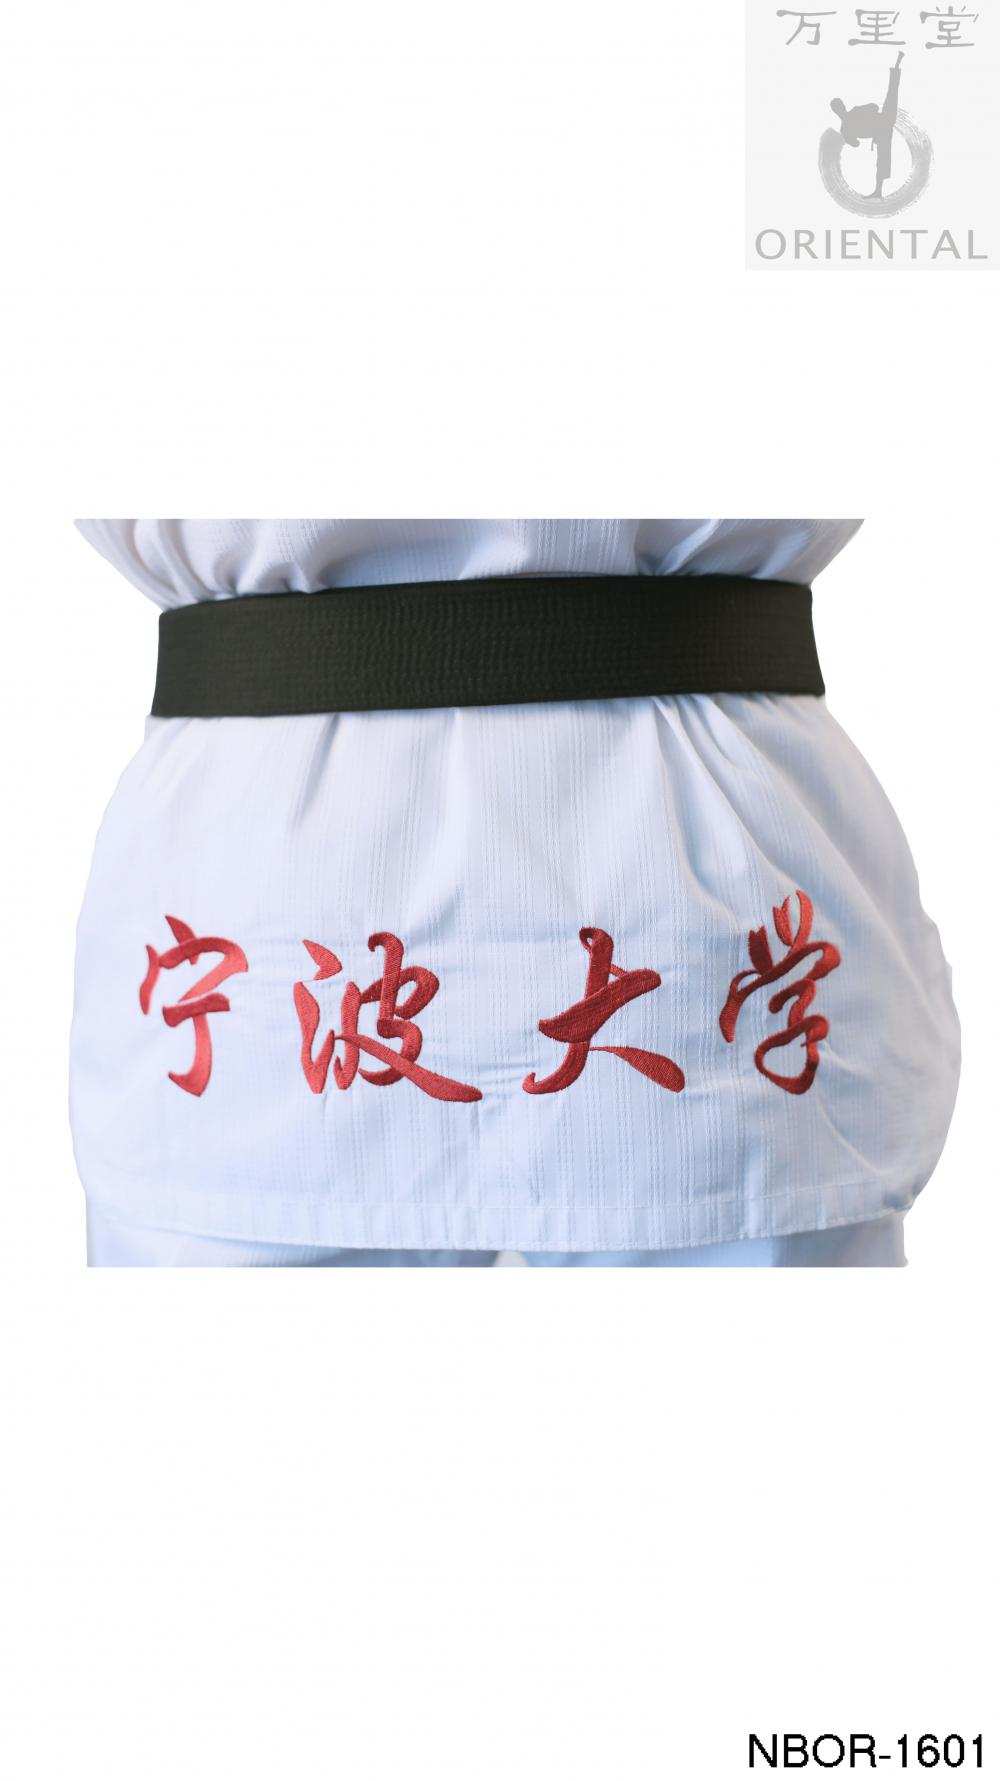 taekwondo clothing with black belts